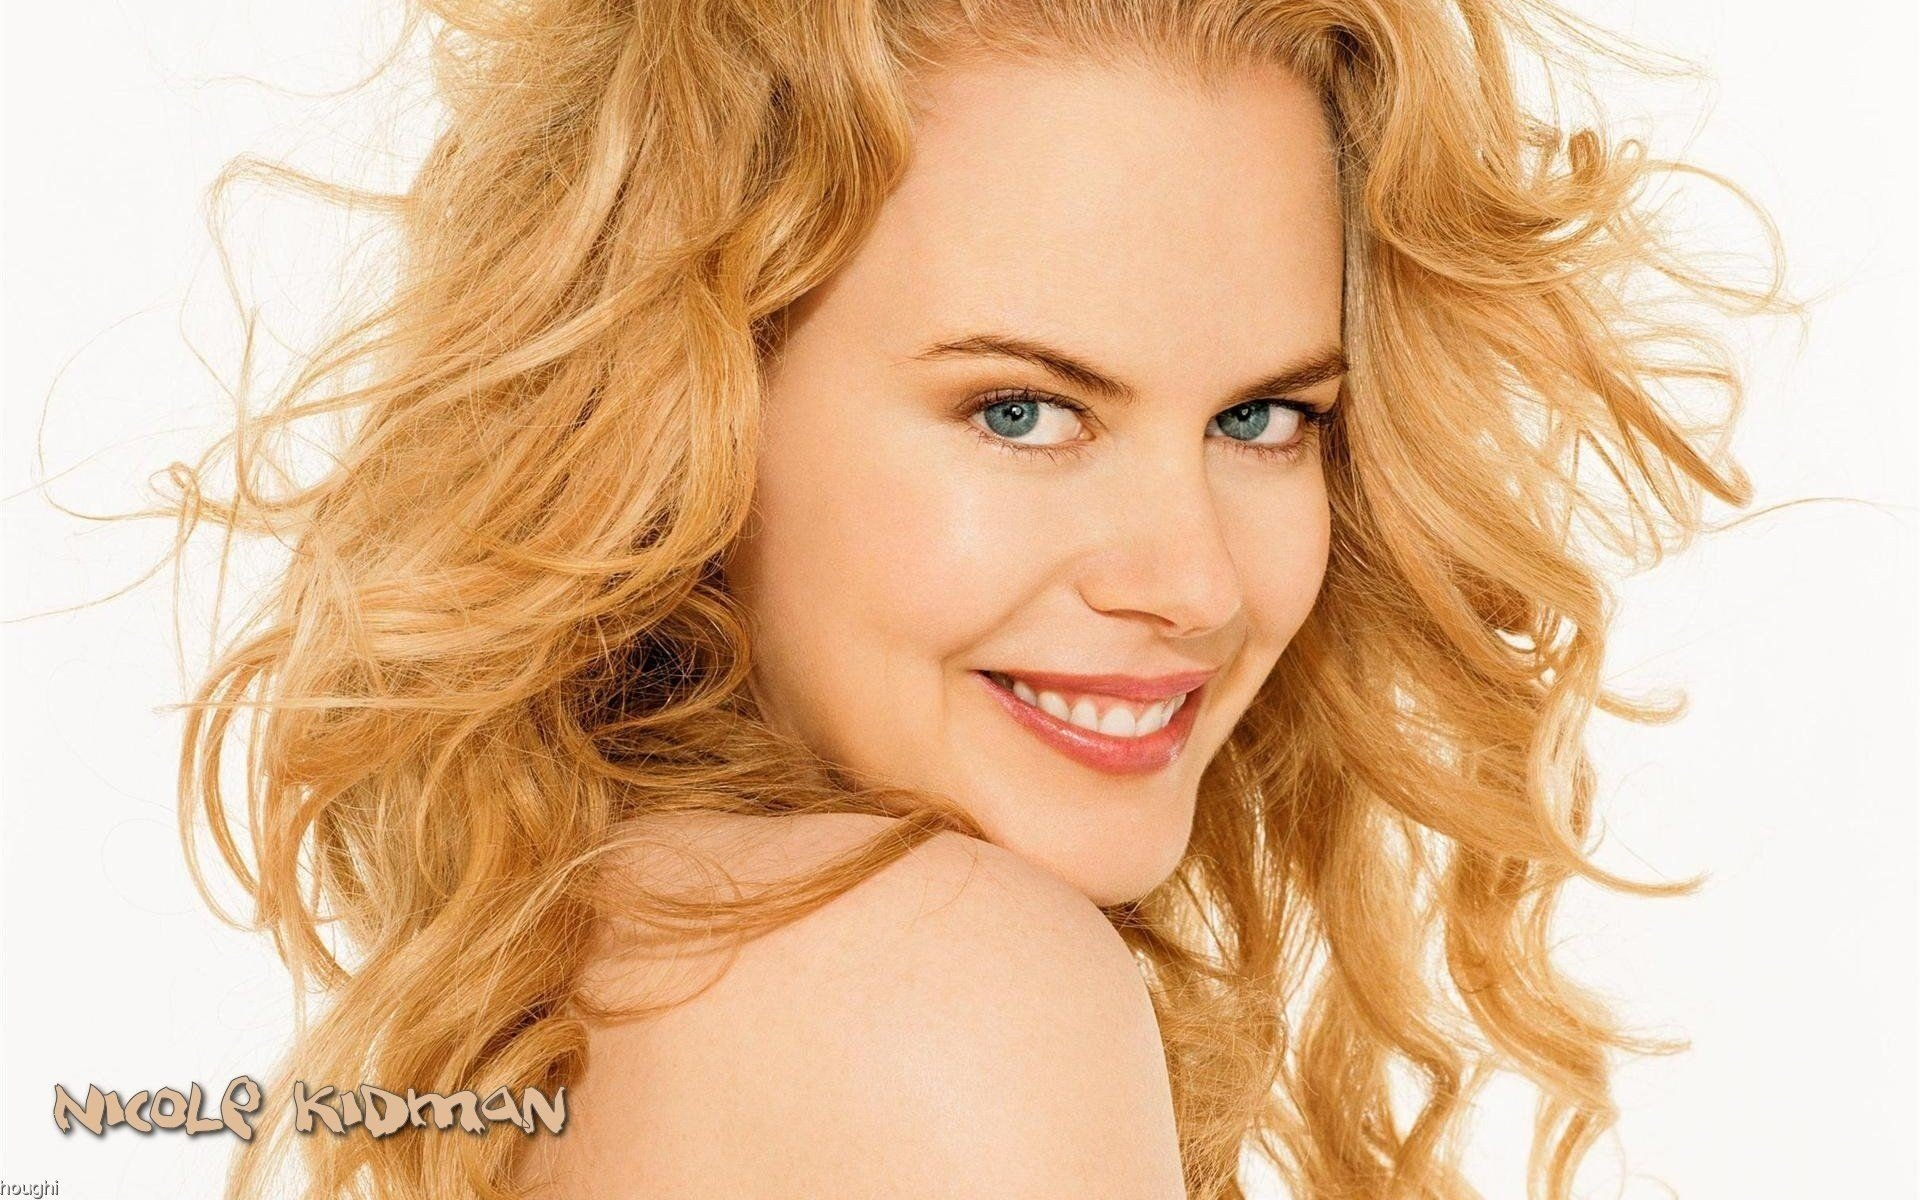 Free Nicole Kidman high quality wallpaper ID:438278 for hd 1920x1200 computer